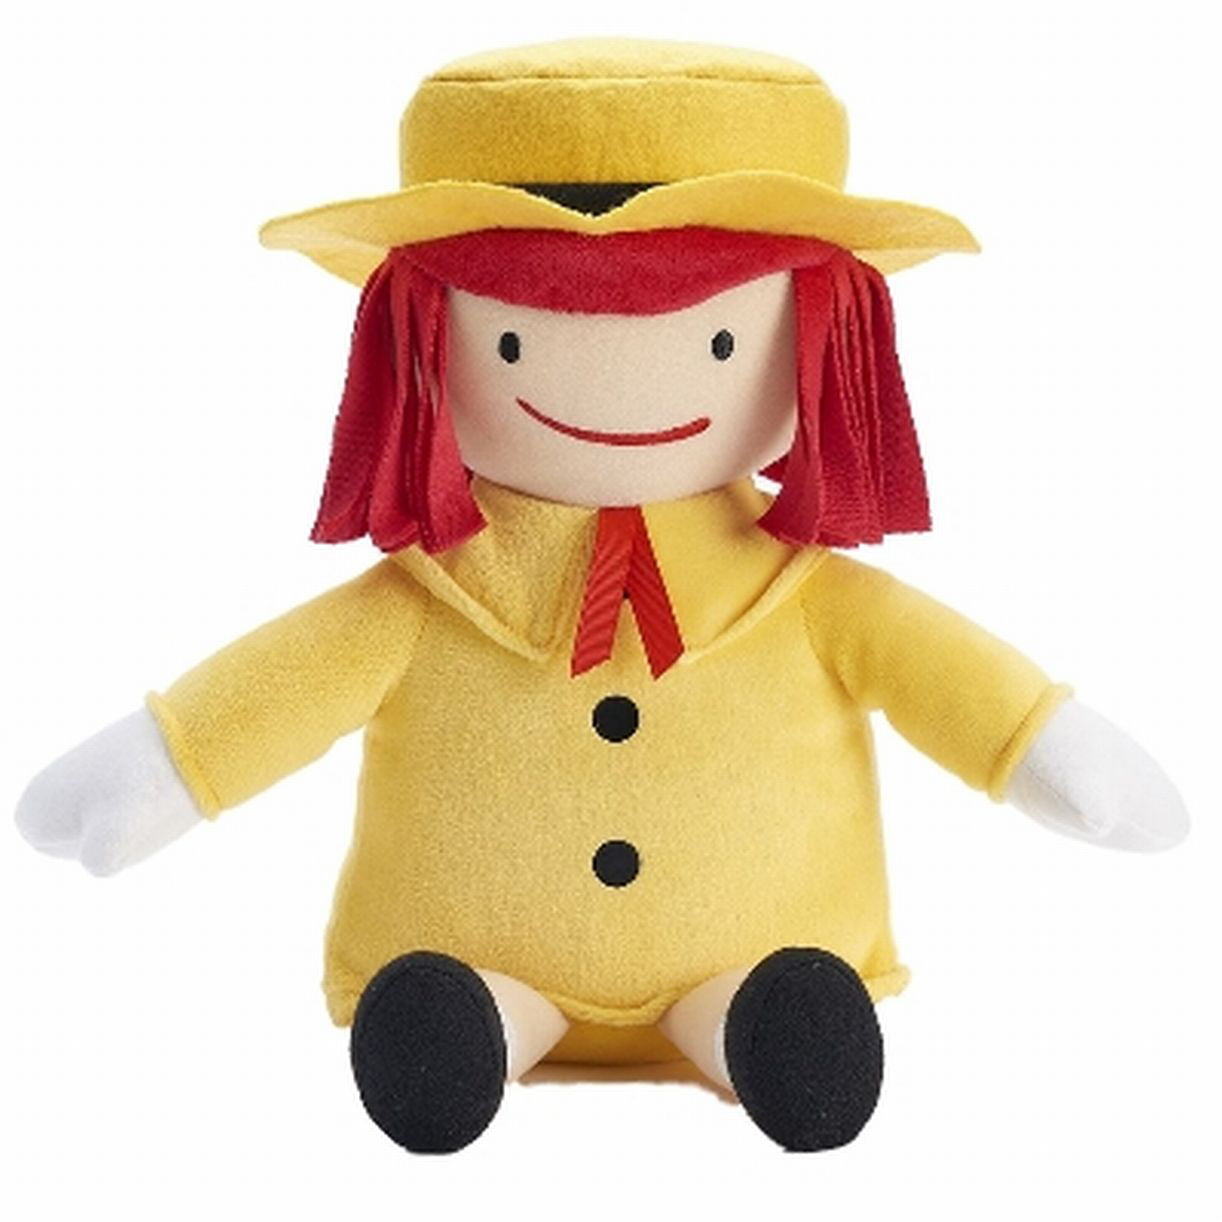 Kohls Cares Madeline Stuffed Doll Plush Pal by